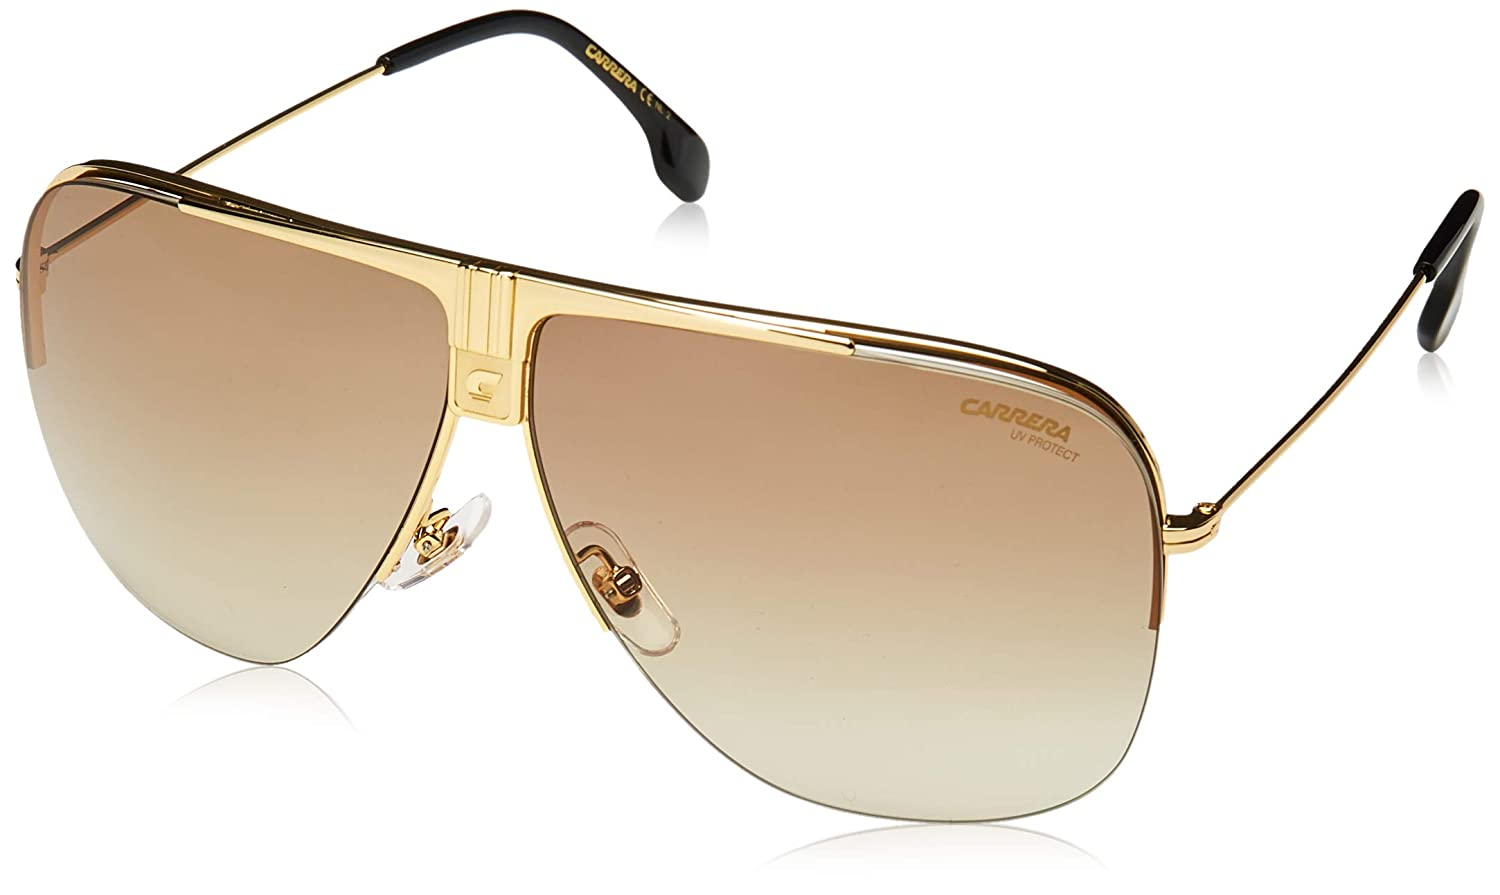 9a65788616 Amazon.com  Carrera CARRERA 1013 S 001 Yellow Gold CARRERA 1013 S Pilot  Sunglasses Lens Cat  Clothing